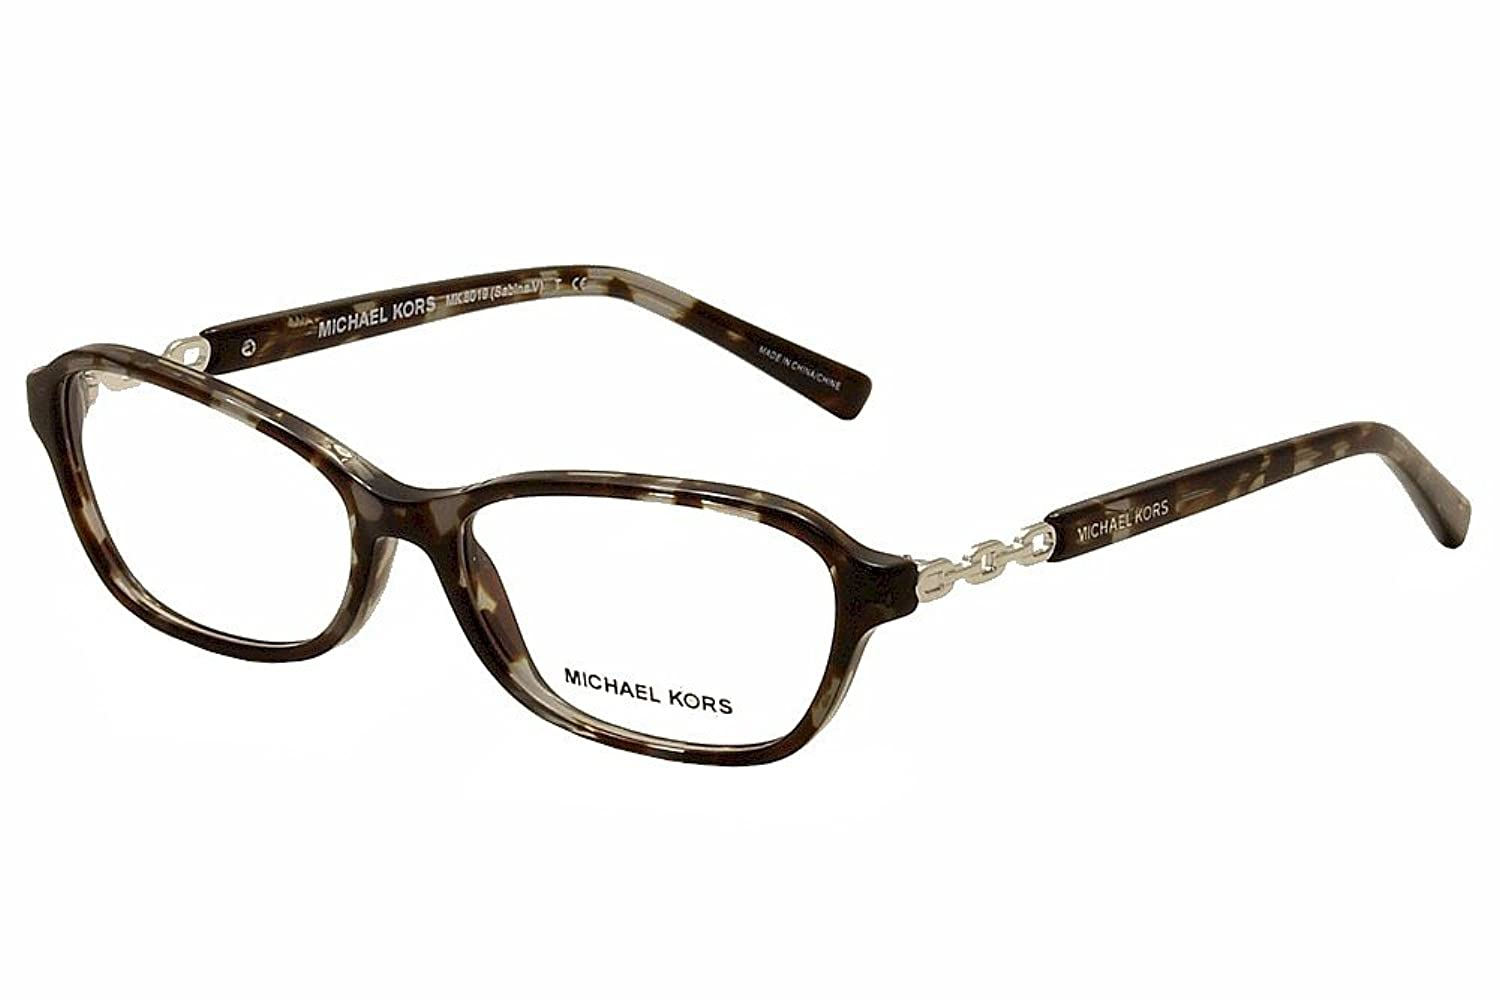 michael kors sabina v mk8019 eyeglass frames 3107 51 black tortoisesilver mk8019 3107 51 at amazon womens clothing store - Michael Kors Frames